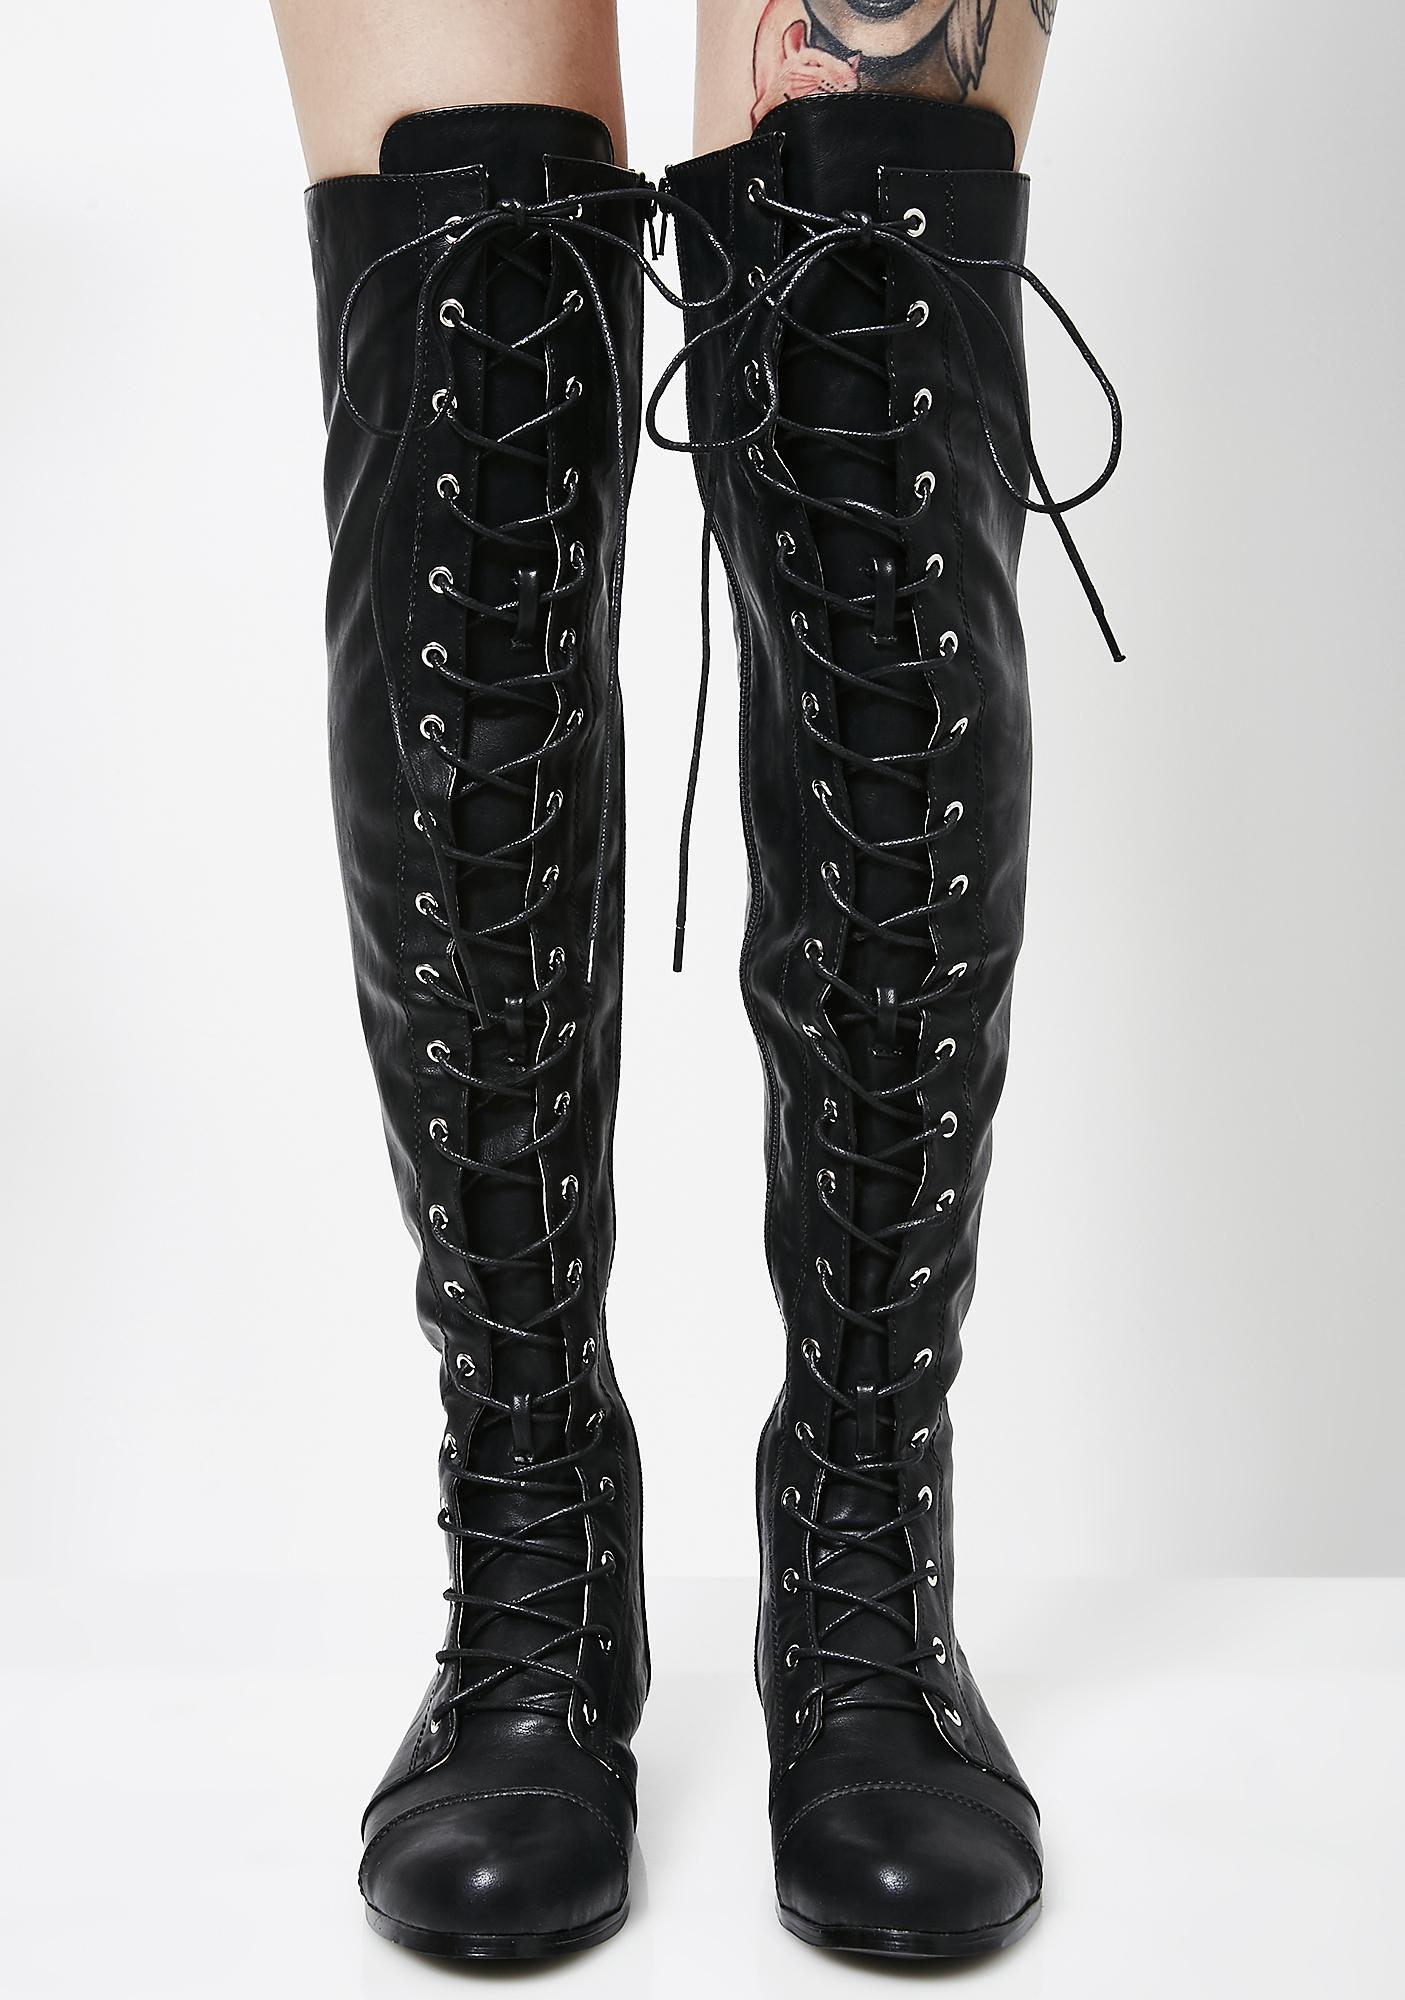 Take Action Lace-Up Boots